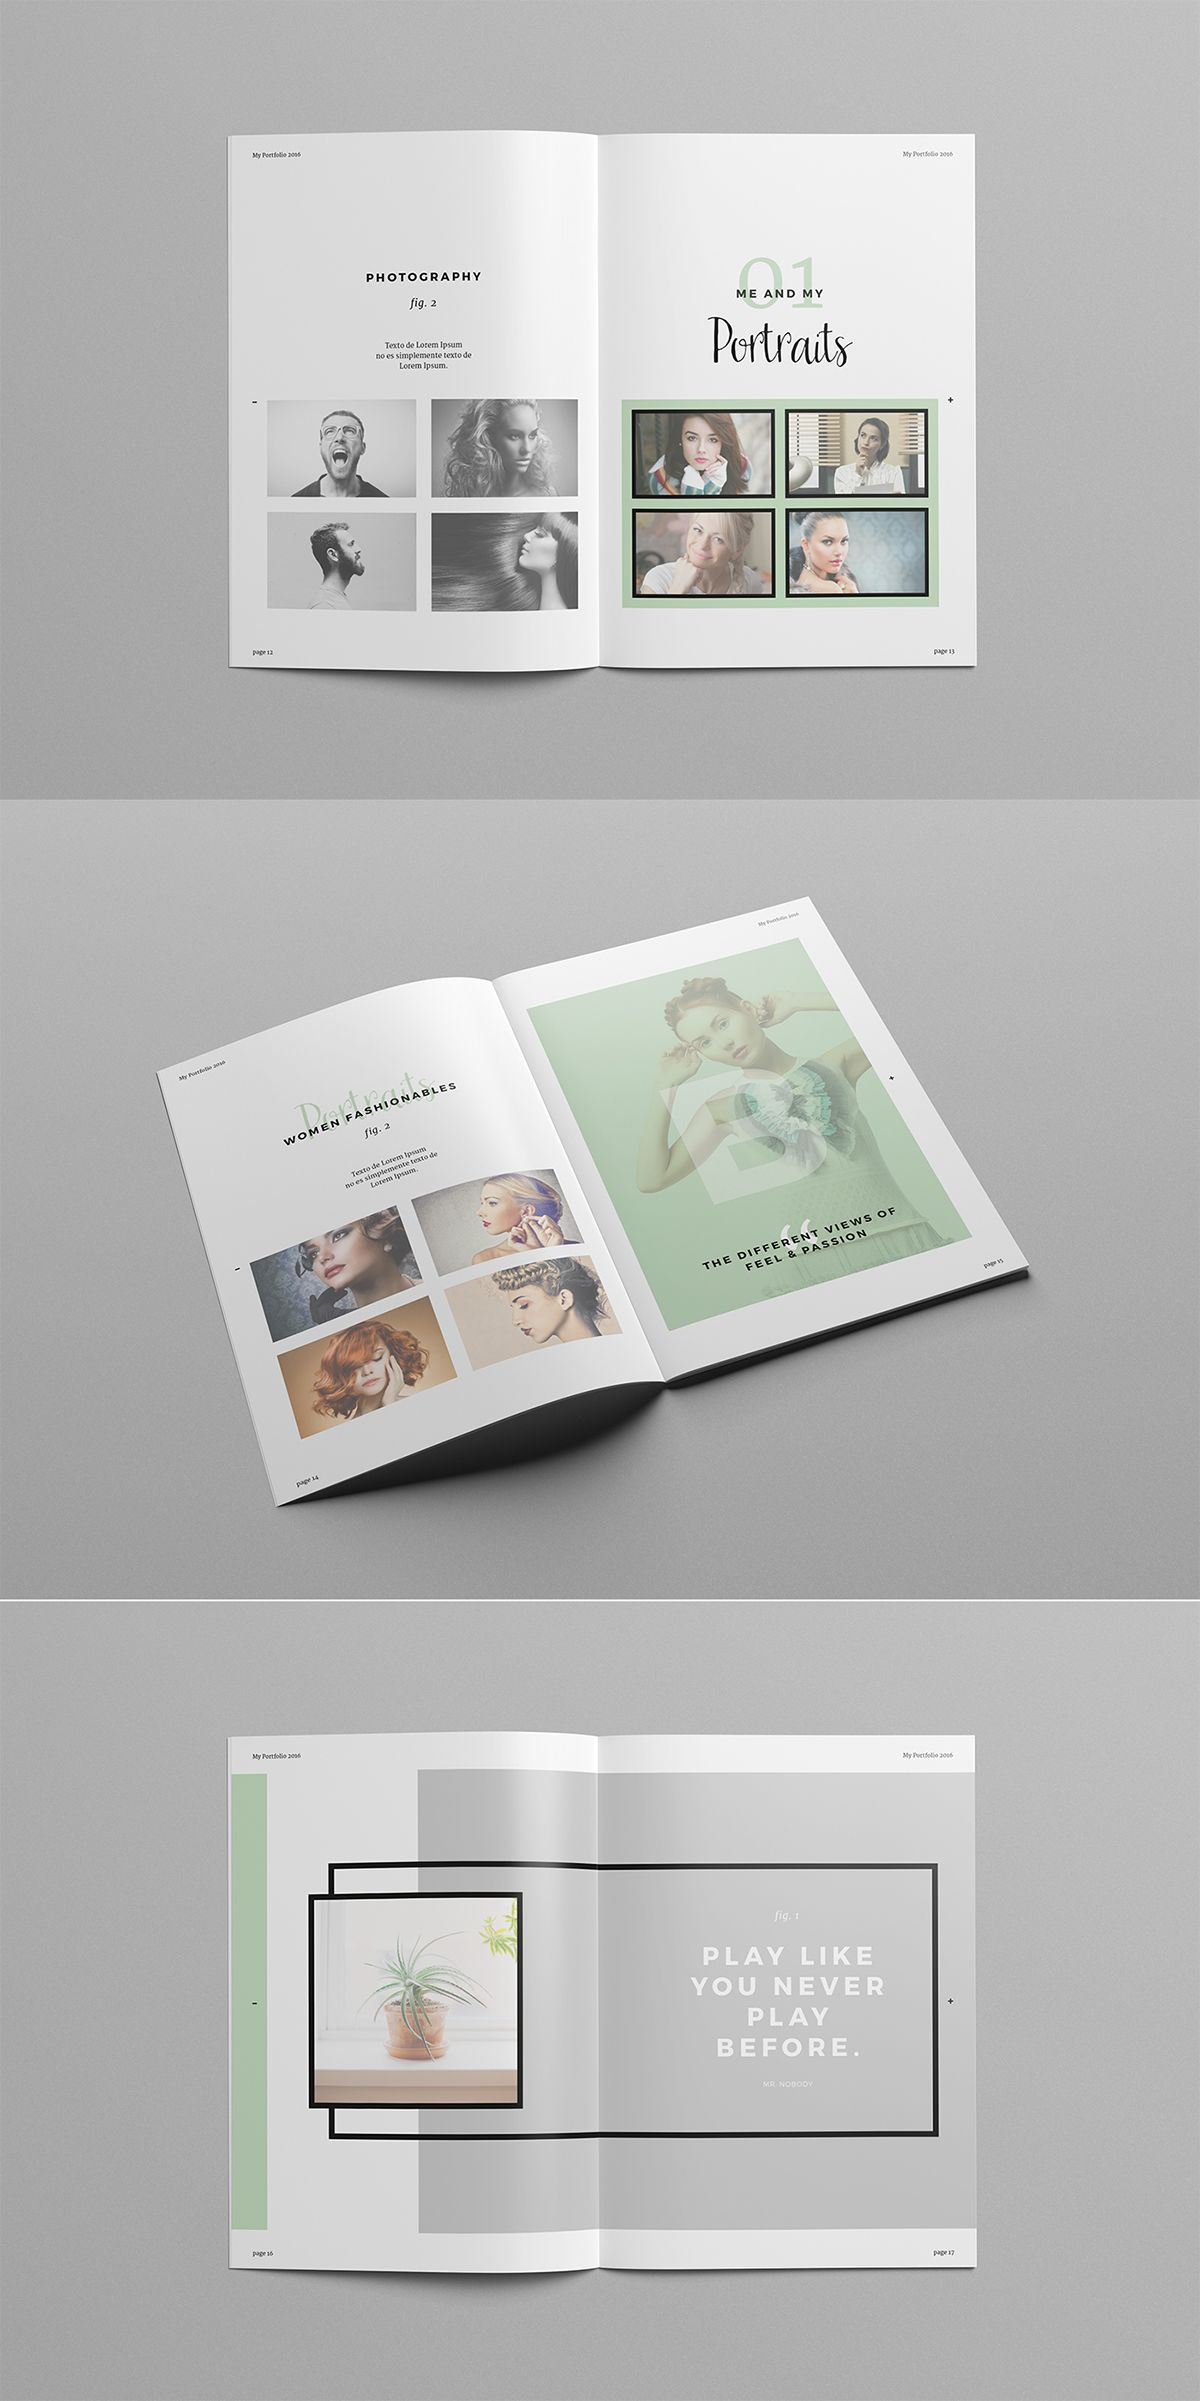 aminulv : I will professional bifold brochure, trifold brochure ...